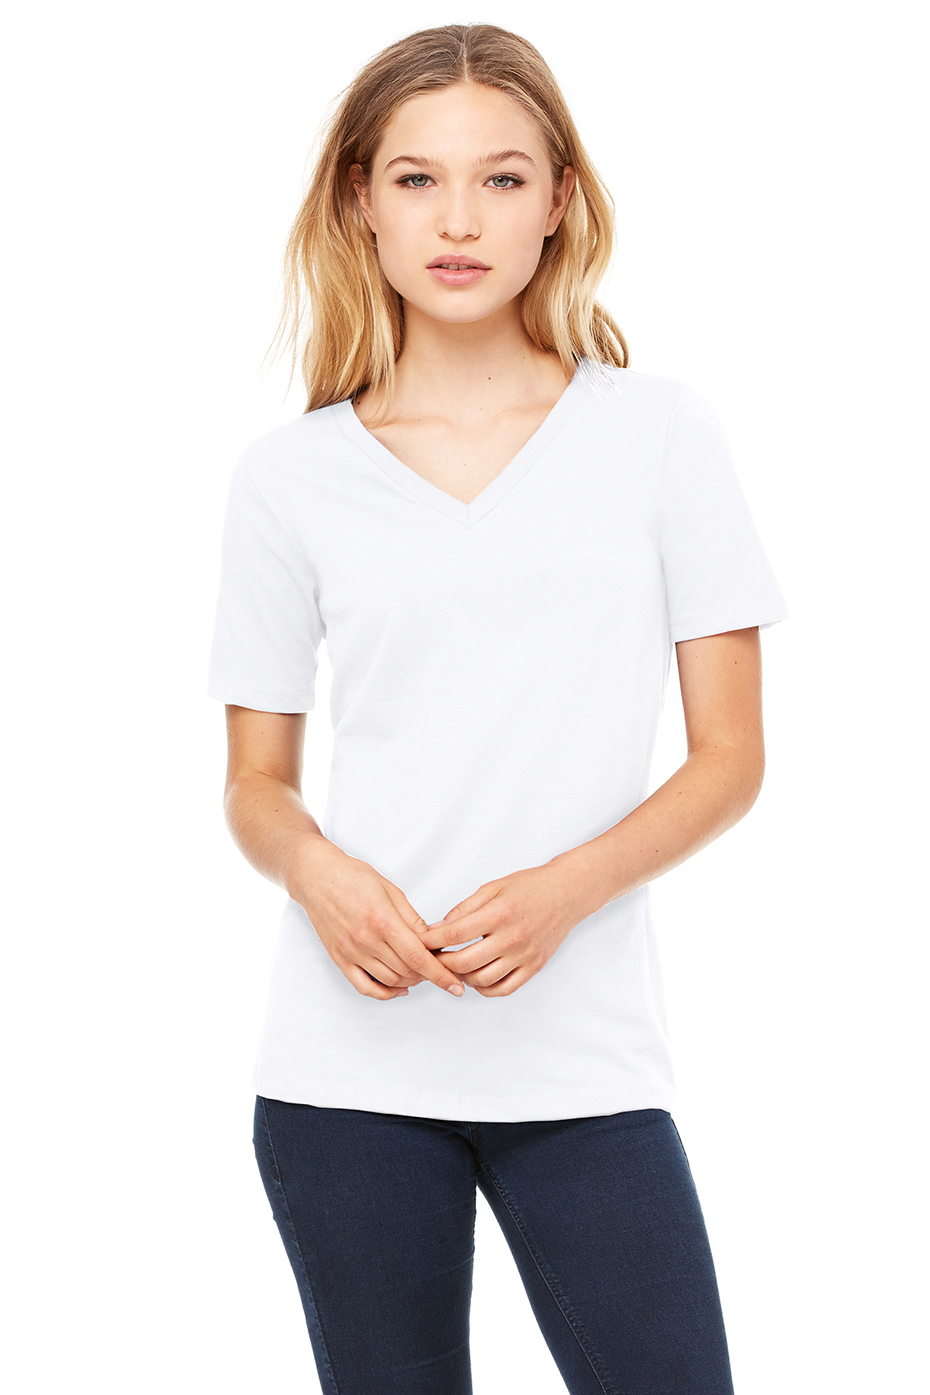 Women S Fashion Clothes Missguided: Women's Relaxed Jersey Short Sleeve V-Neck Tee